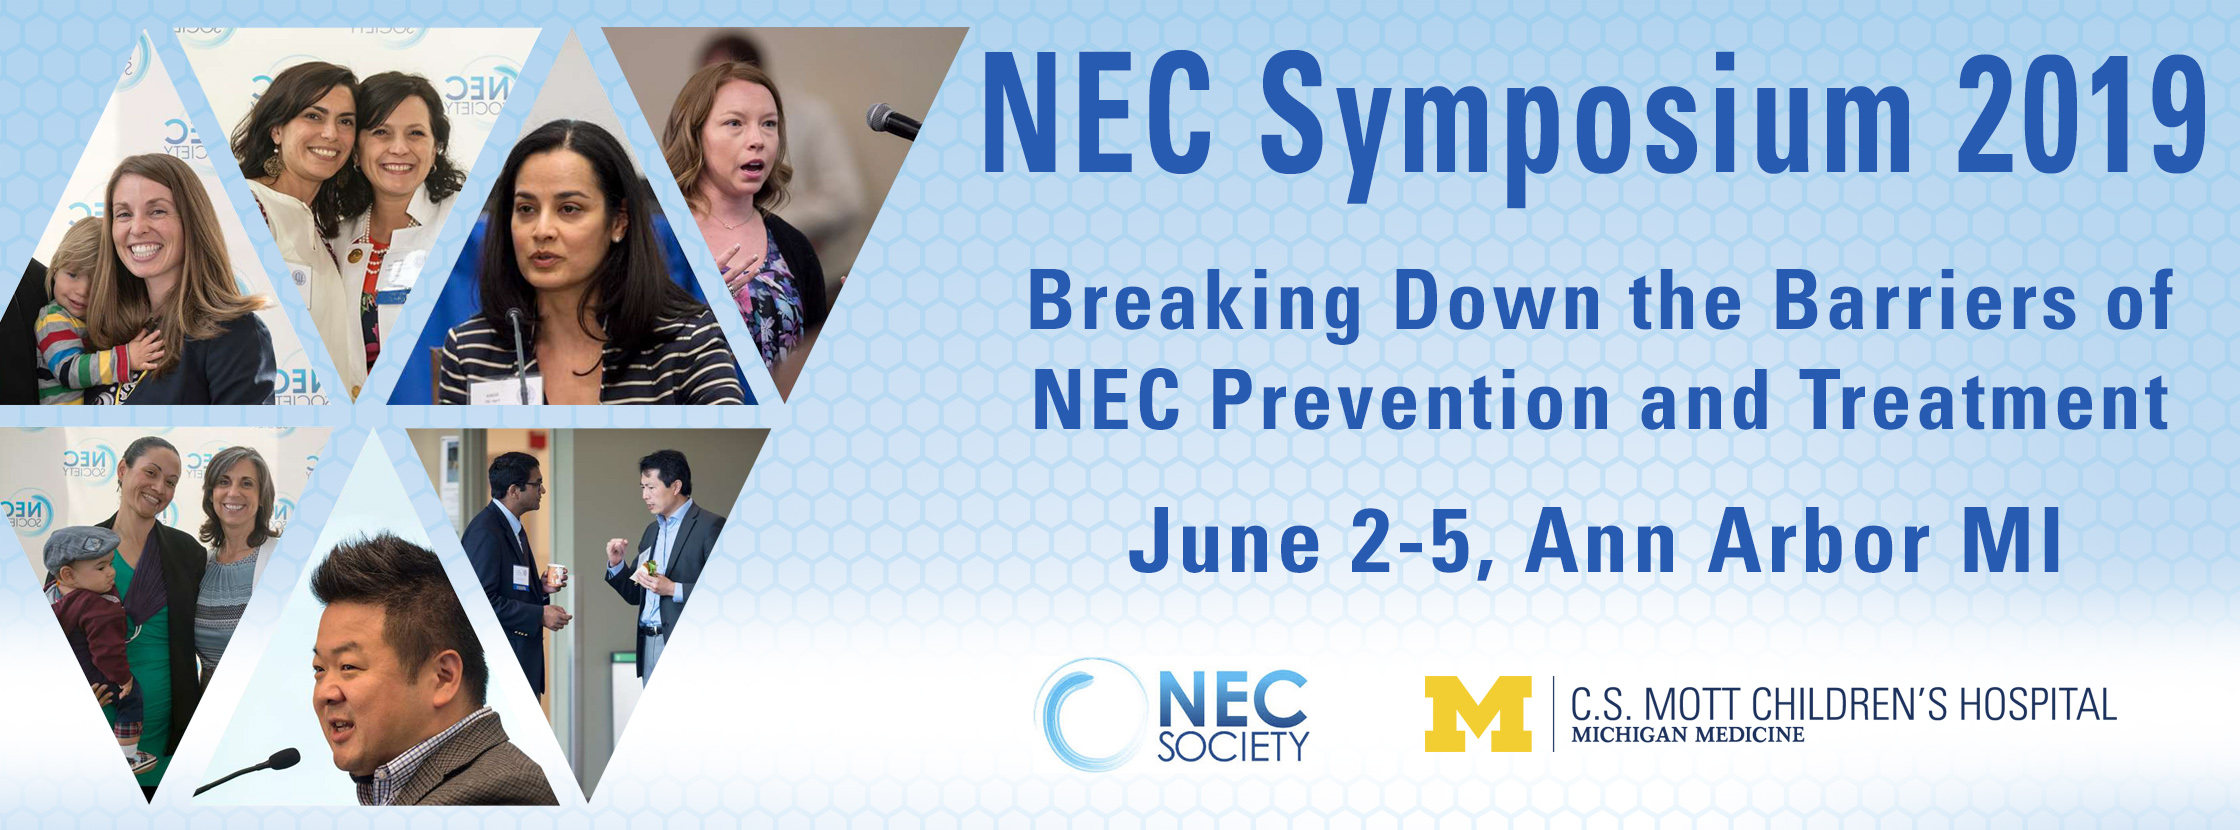 NEC Symposium 2019: Breaking Down the Barriers to NEC Prevention and Treatment June 2-5, Ann Arbor, MI